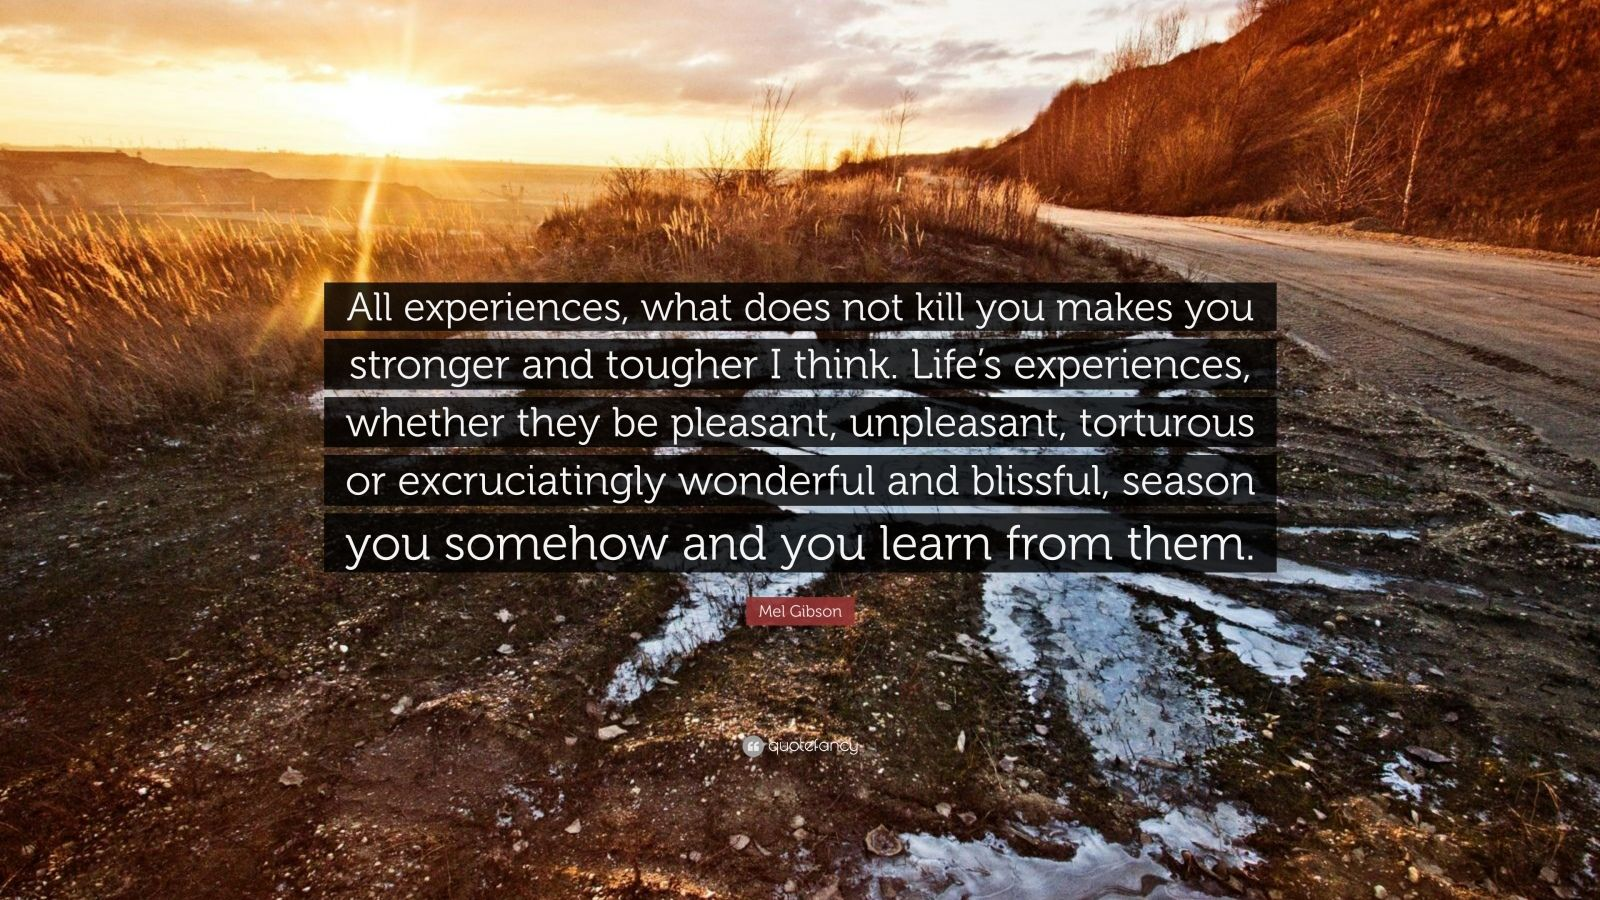 """Mel Gibson Quote: """"All experiences, what does not kill you makes you stronger and tougher I think. Life's experiences, whether they be pleasant, unpleasant, torturous or excruciatingly wonderful and blissful, season you somehow and you learn from them."""""""